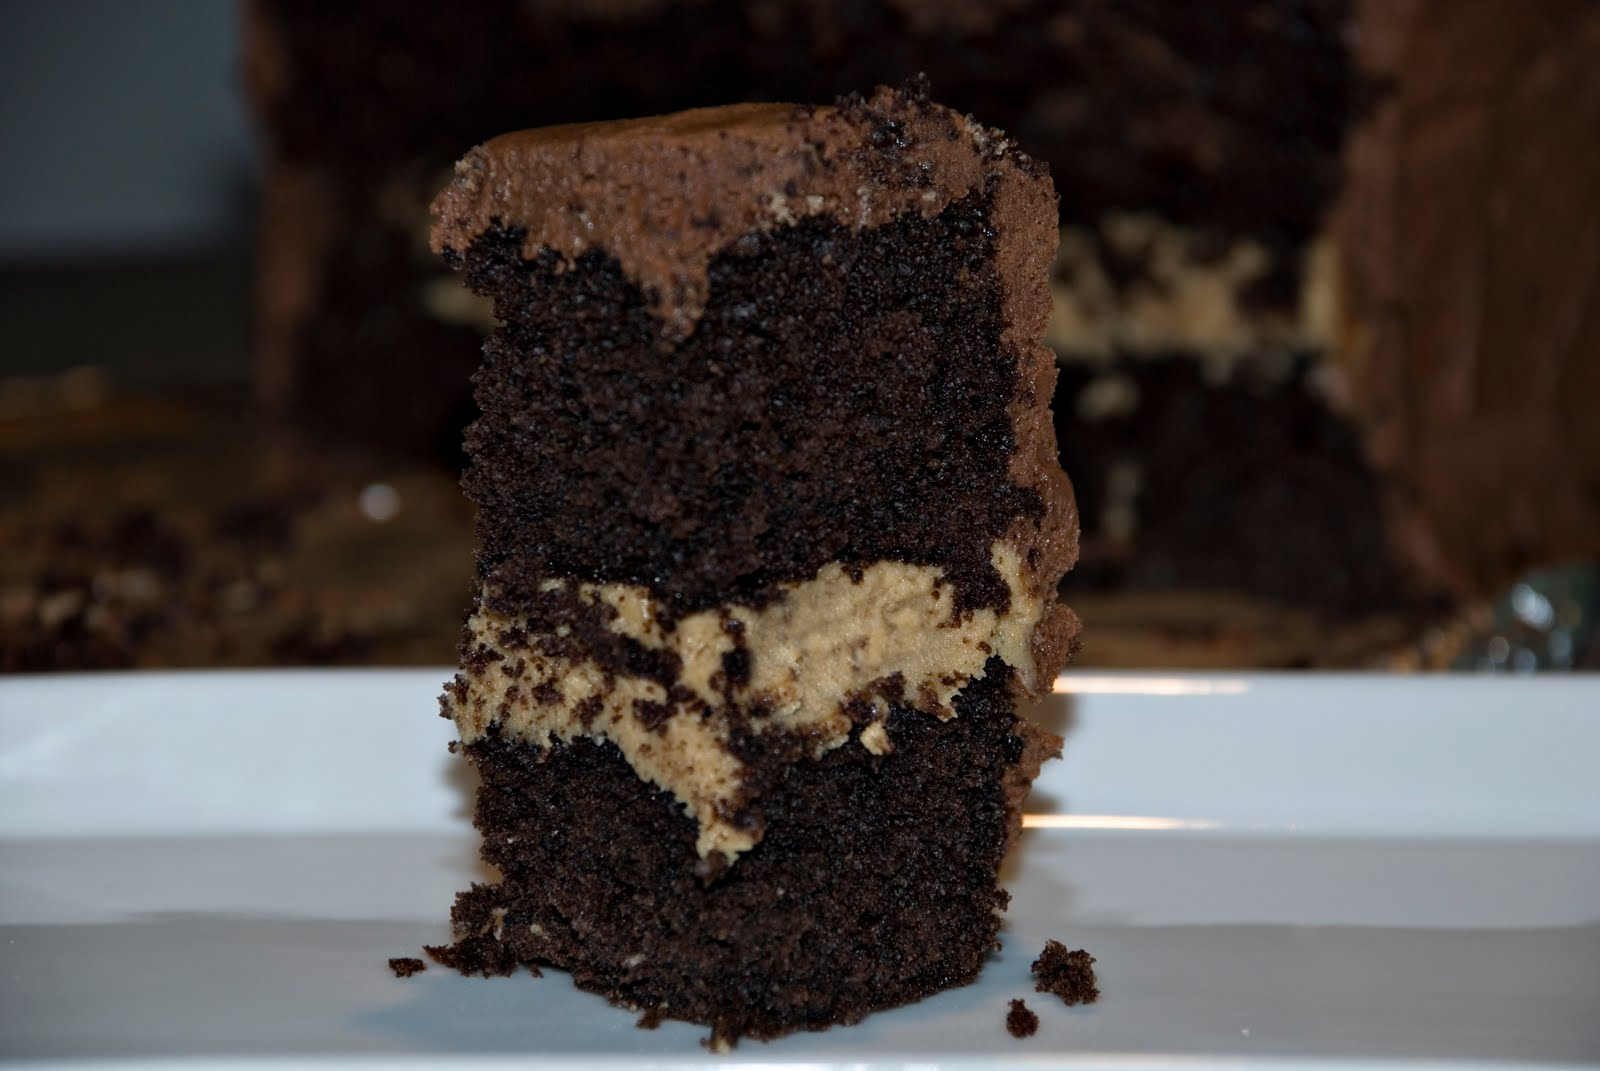 Making Lemonade: Chocolate Cake with Peanut Butter Filling